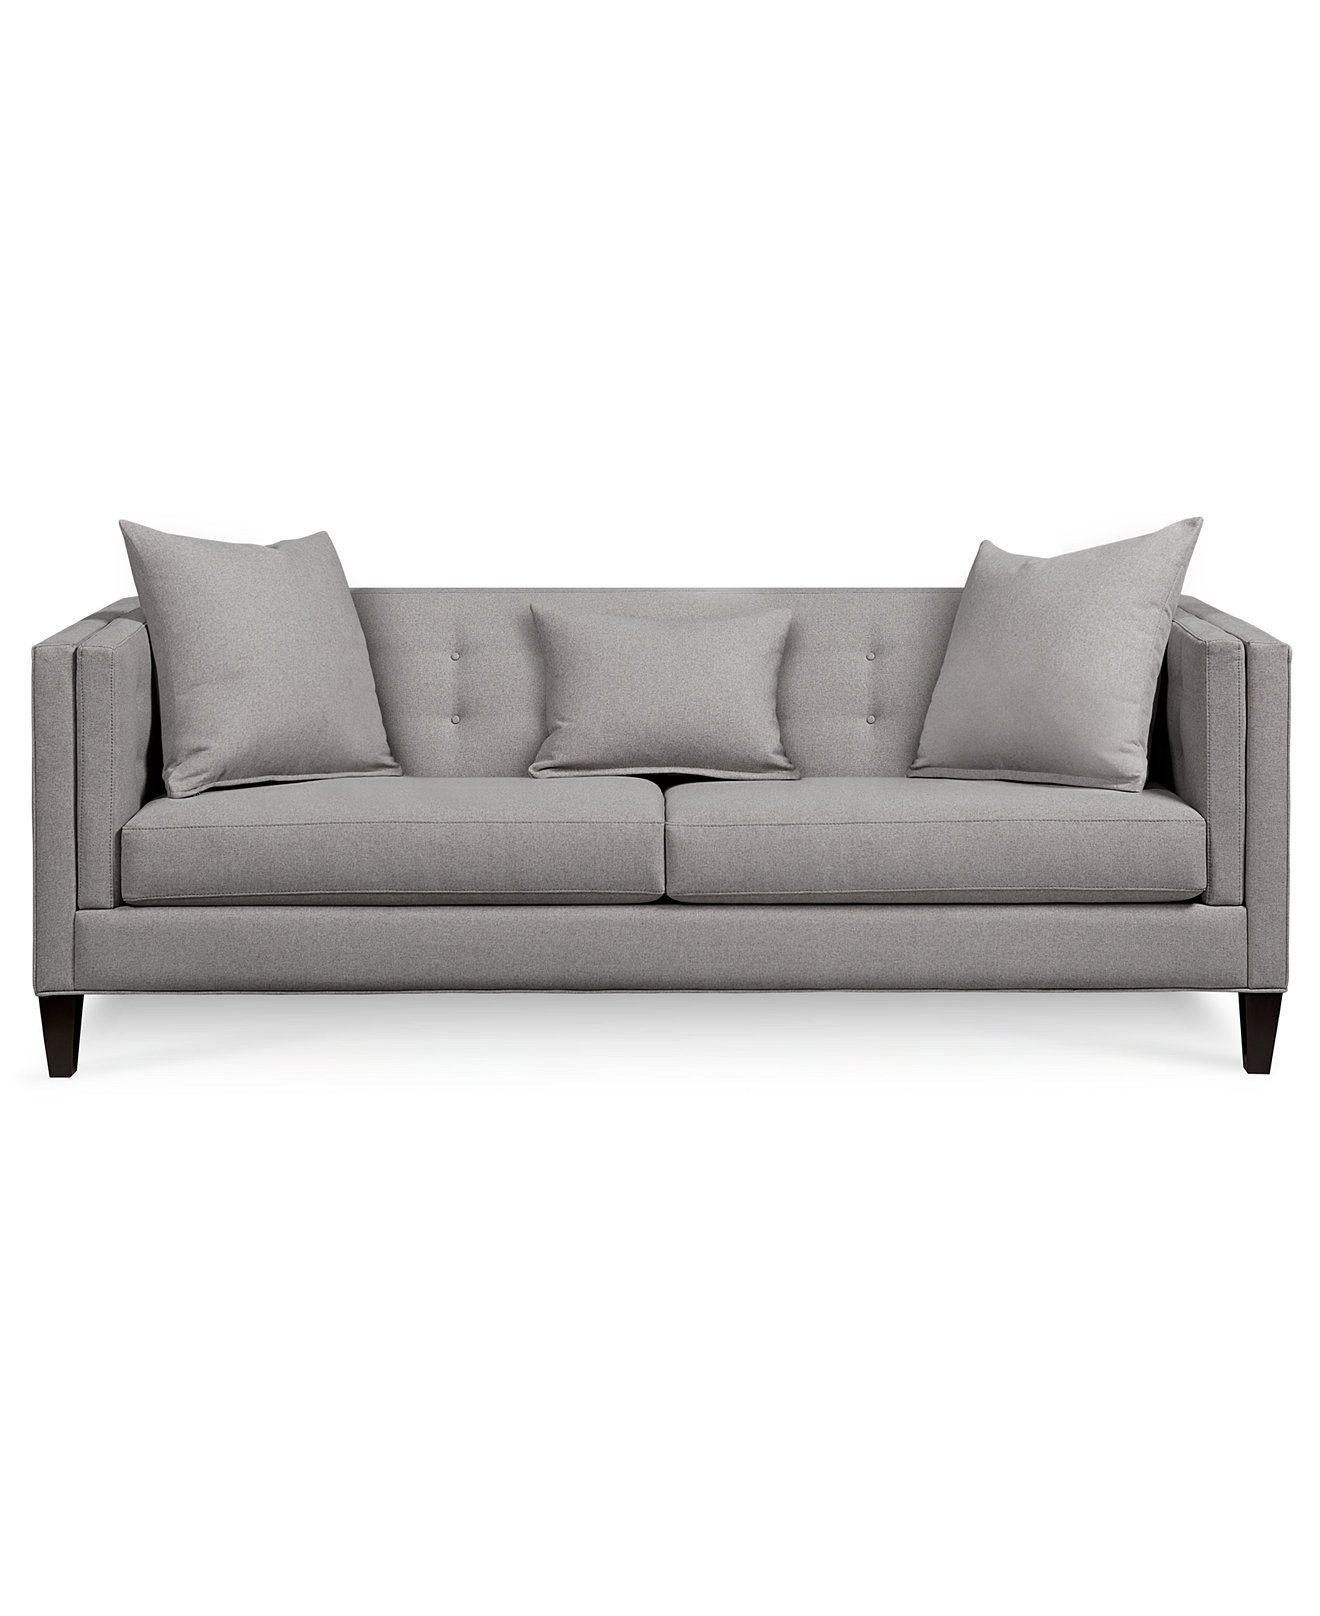 Braylei Track Arm Sofa with 3 Toss Pillows Created for Macy s